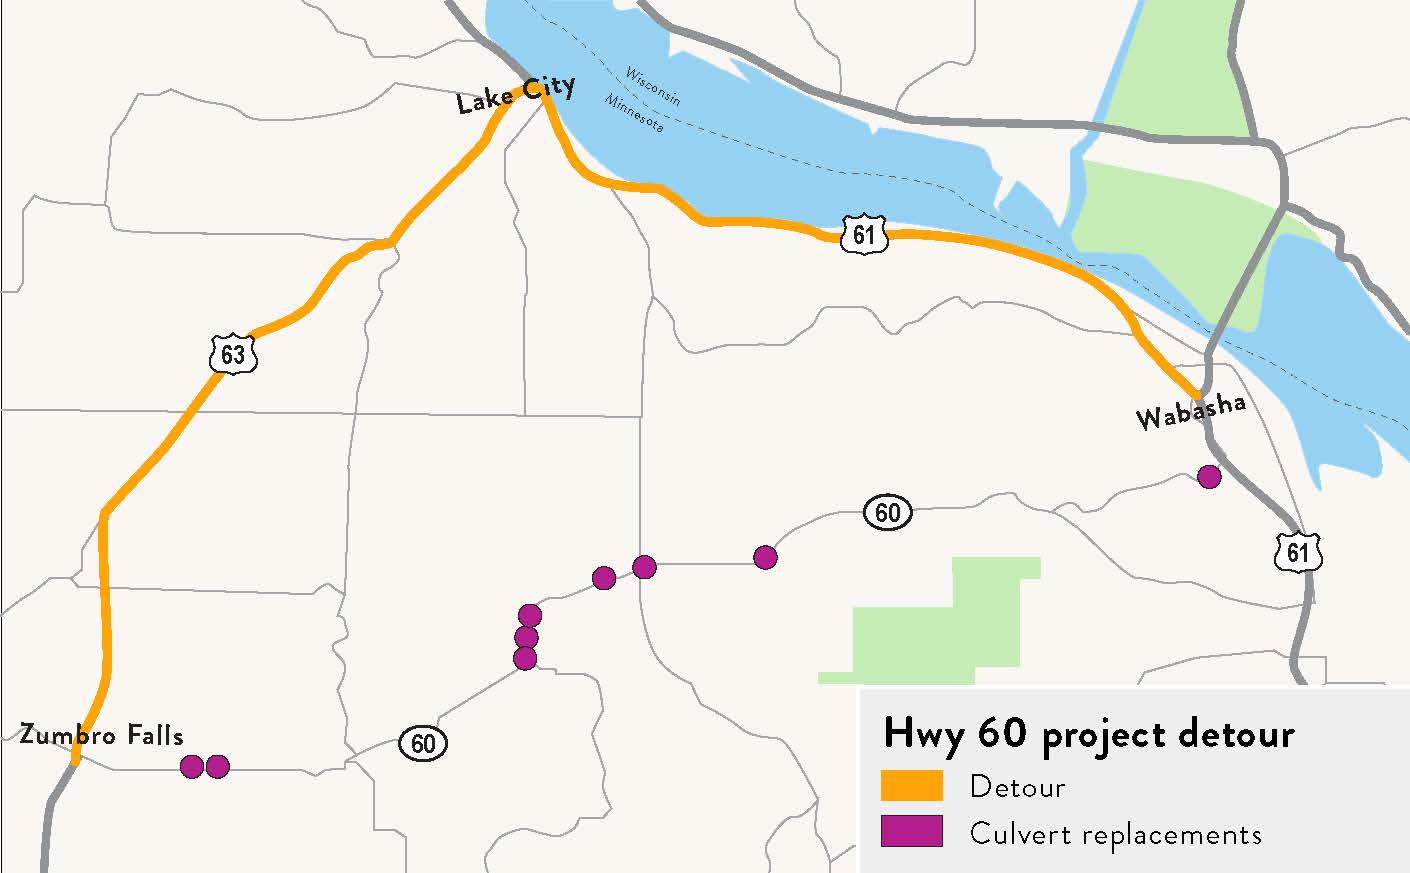 Hwy 60 project map showing where culverts will be replaced and the detour